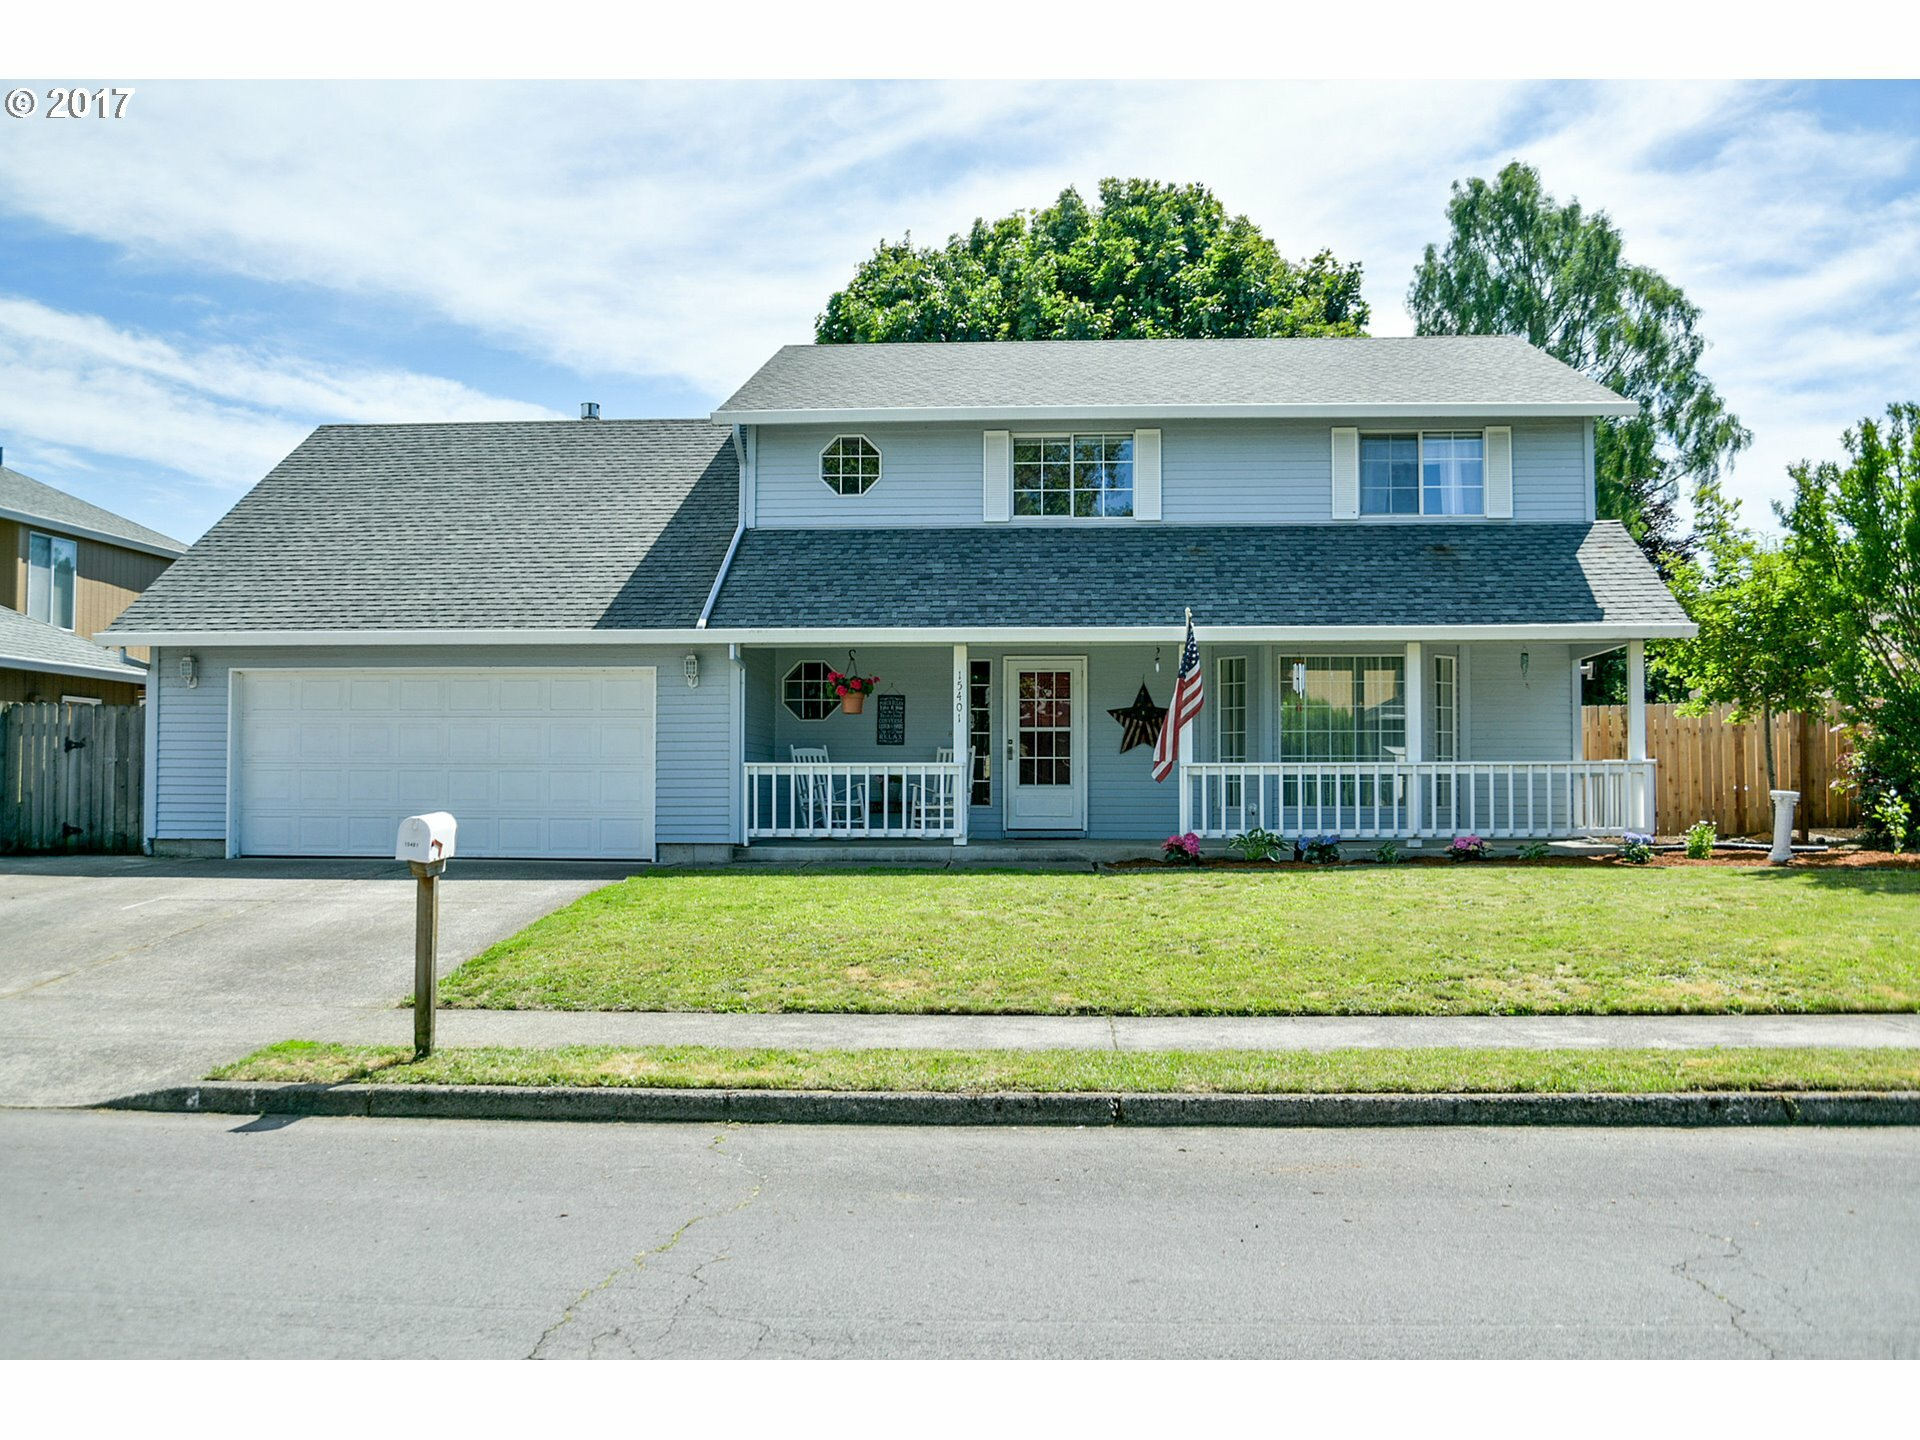 15401 Se Meadow Park Dr, Vancouver, WA - USA (photo 1)